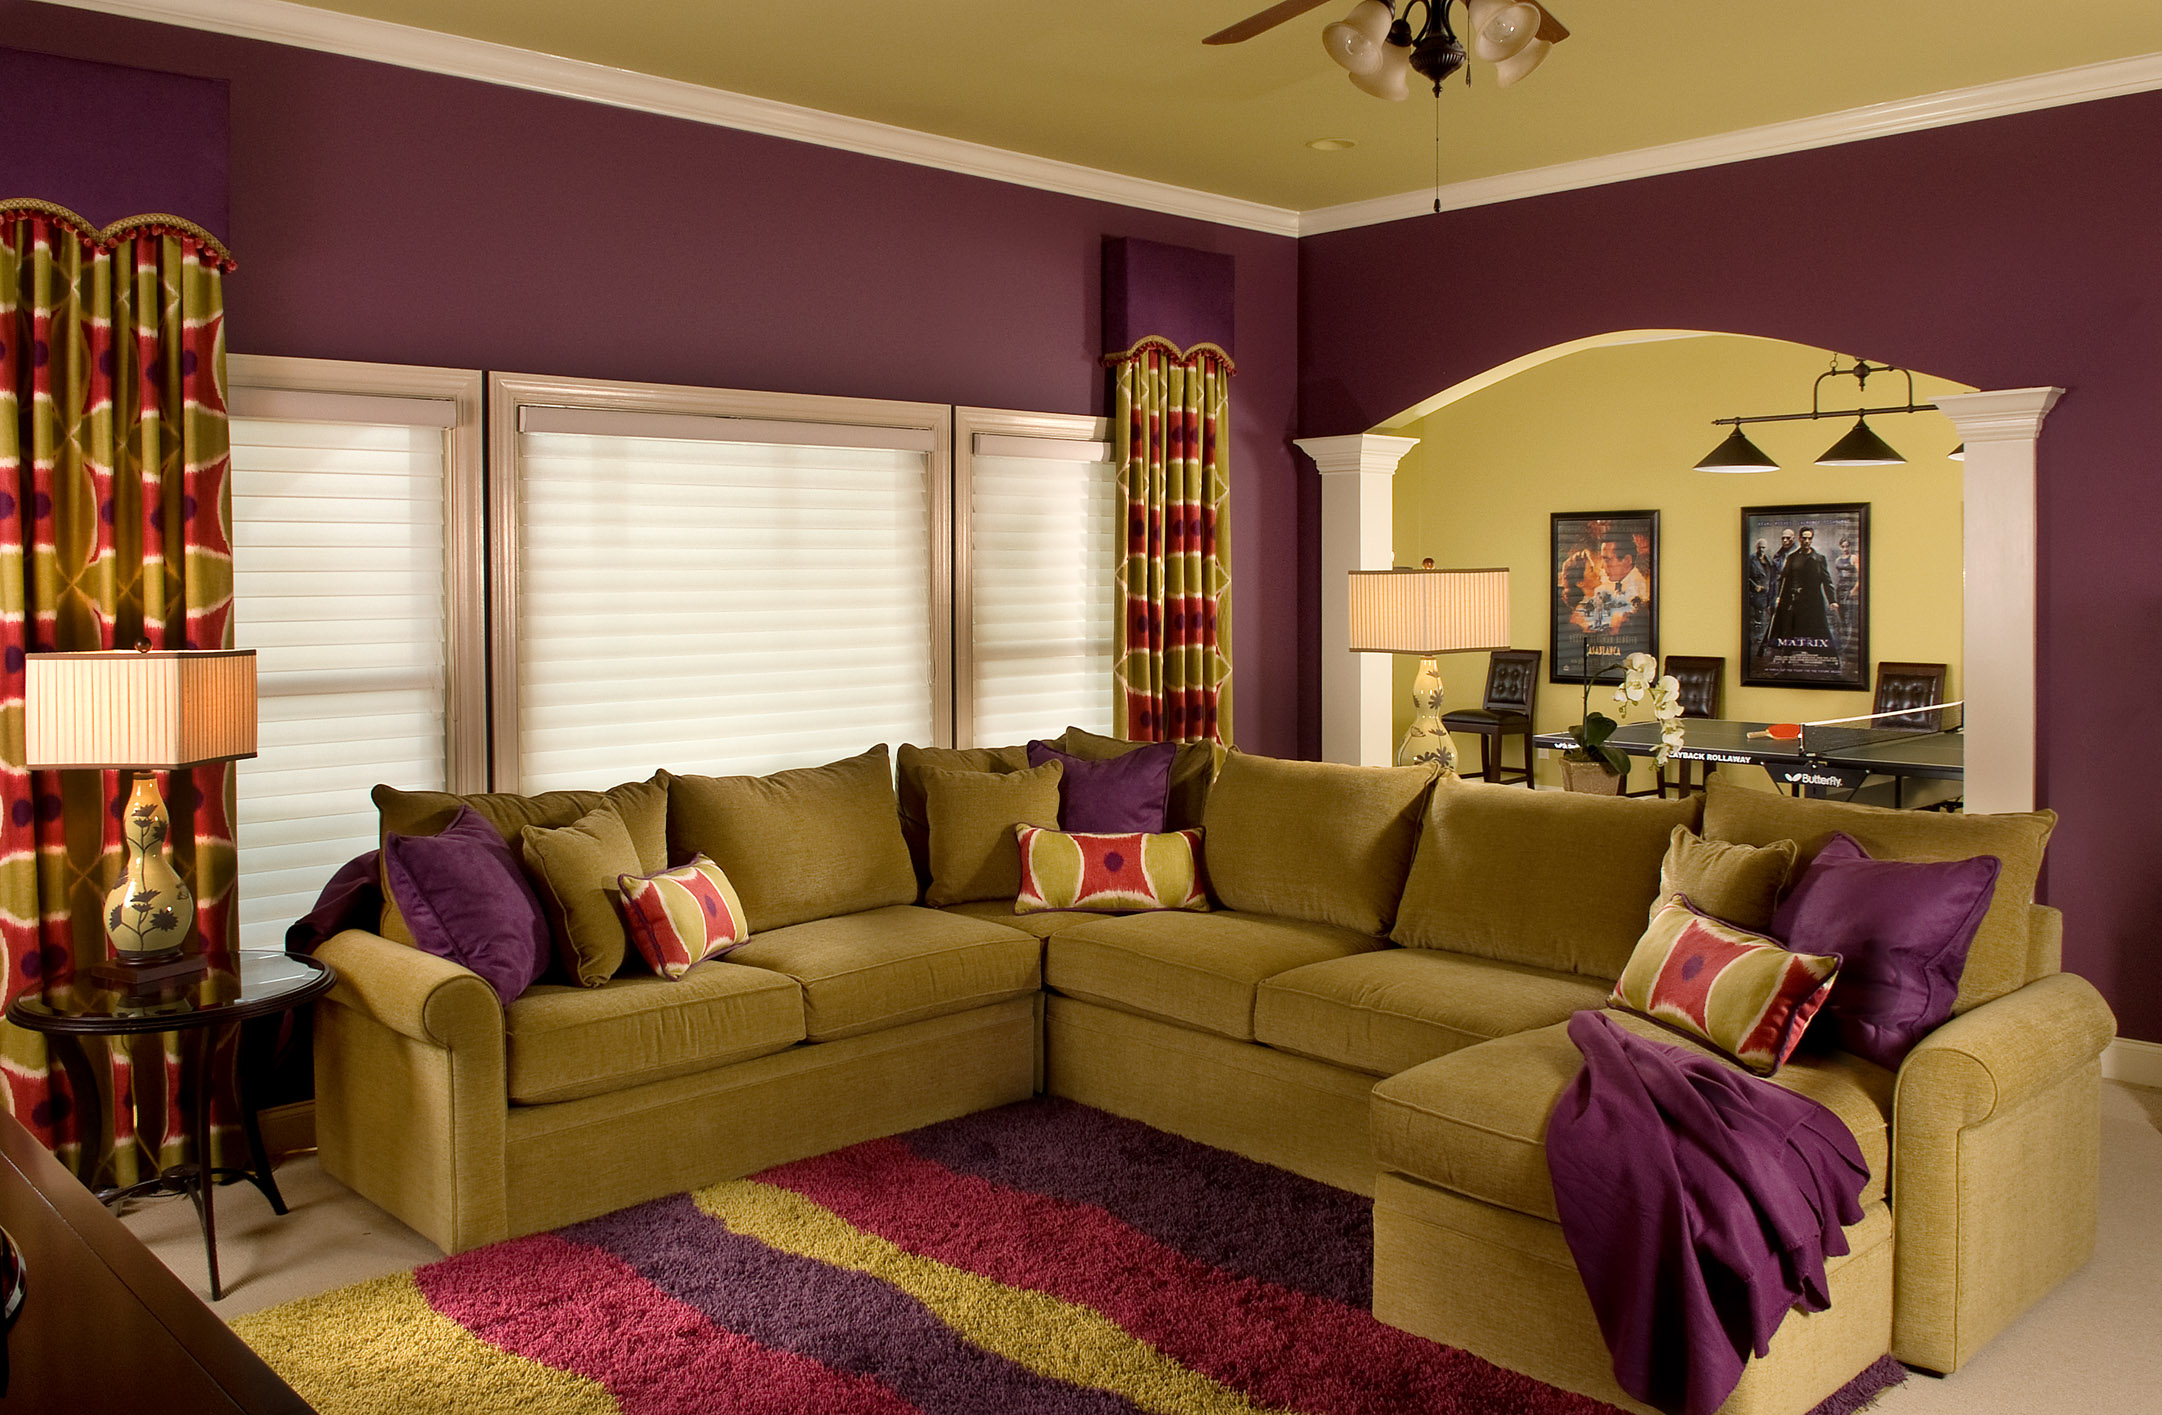 Stunning Living Room Wall Color Schemes 2162 x 1415 · 645 kB · jpeg